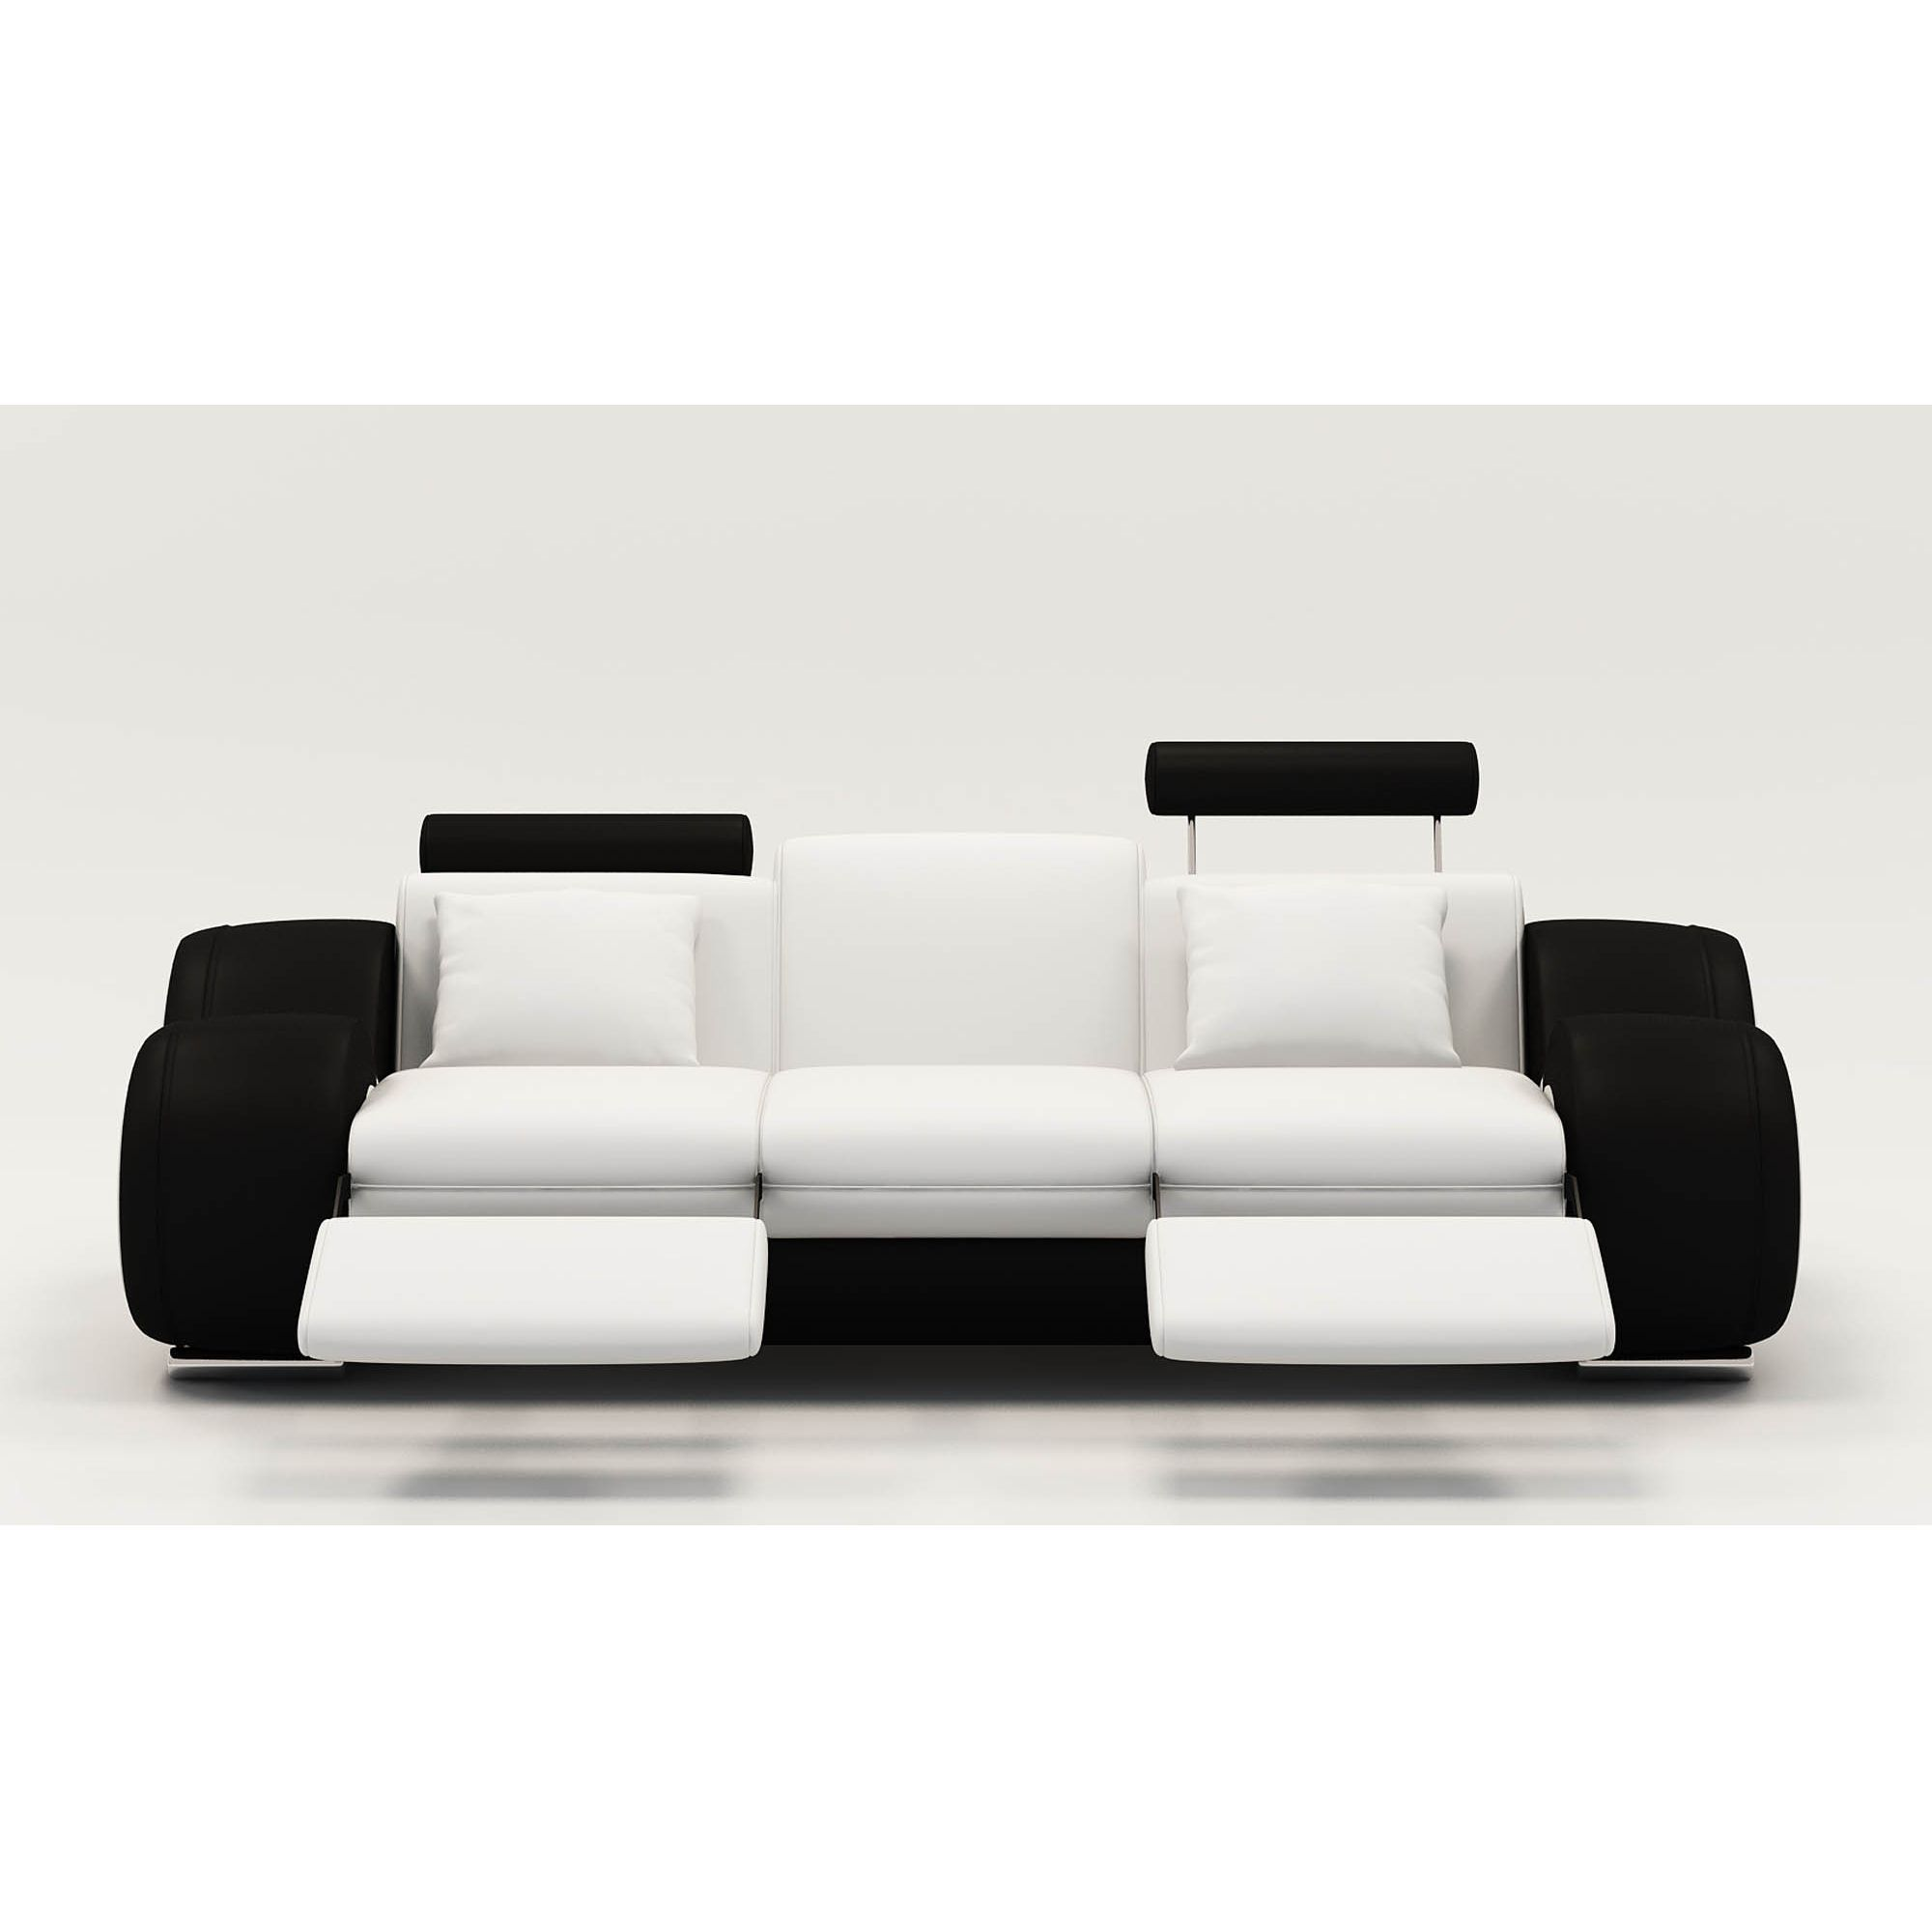 Deco in paris ensemble canape relax design 3 2 1 places for Canape 2 places design